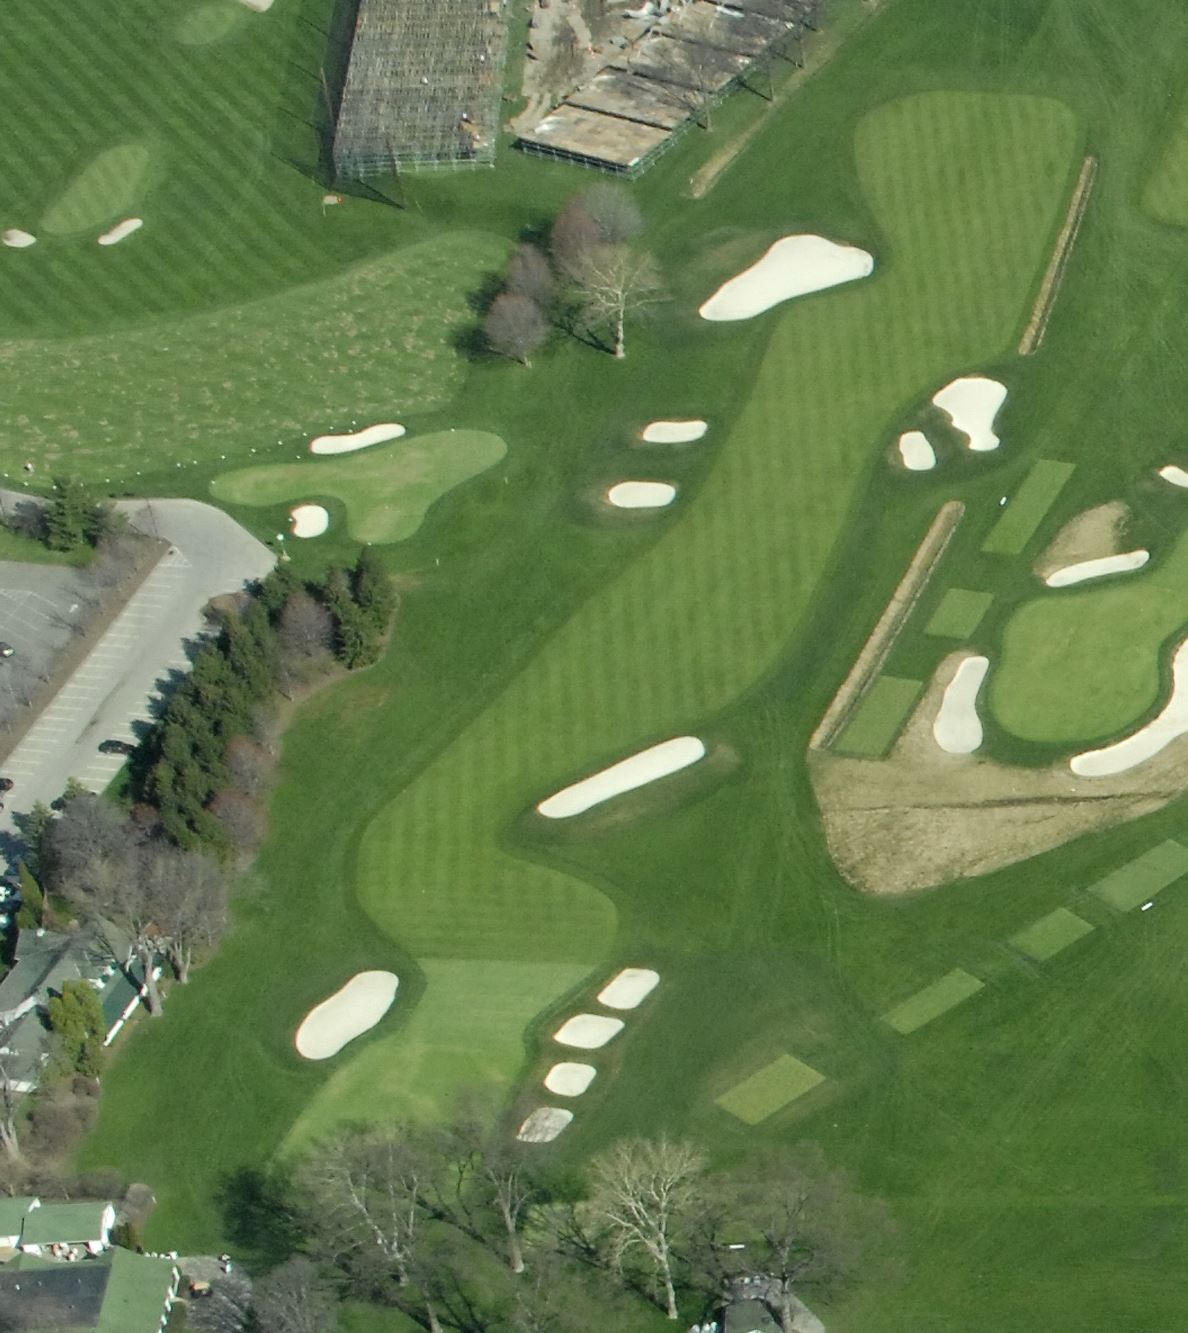 Oakmont Country Club Puts Focus On 2016 U S Open